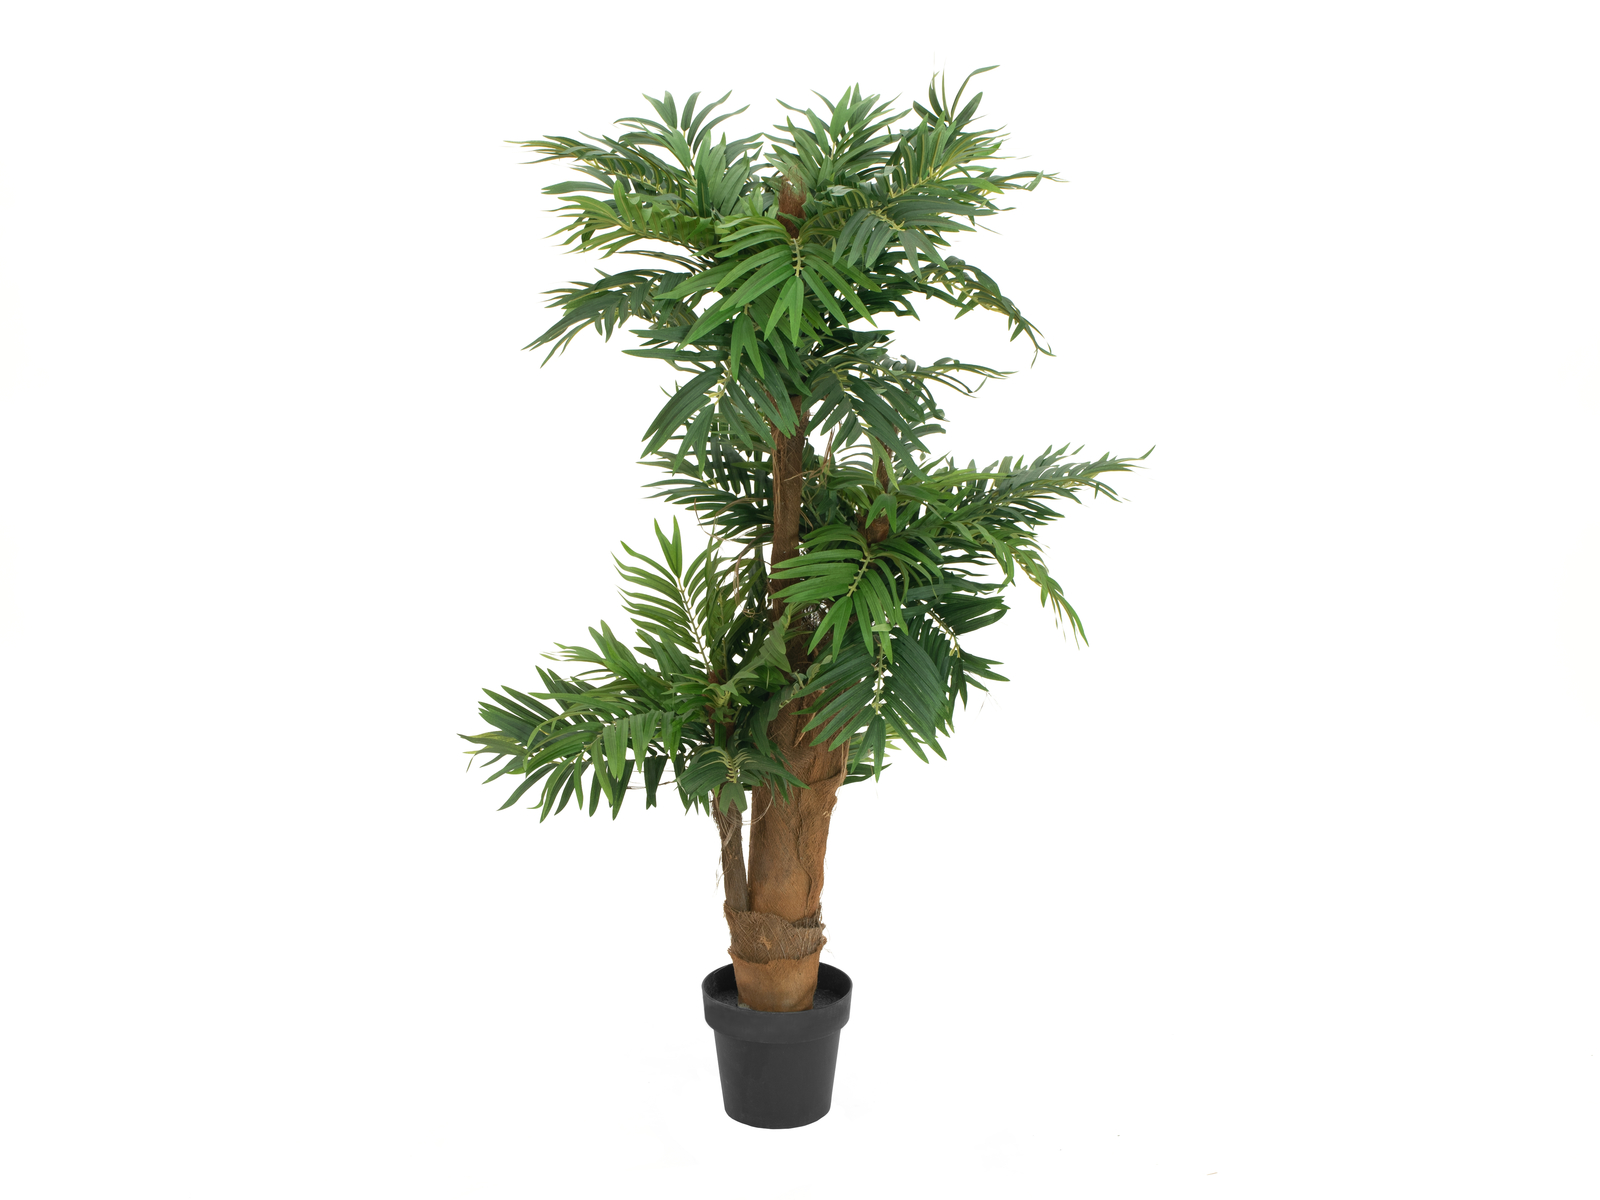 EUROPALMS la palma Areca, piante artificiali, 140cm